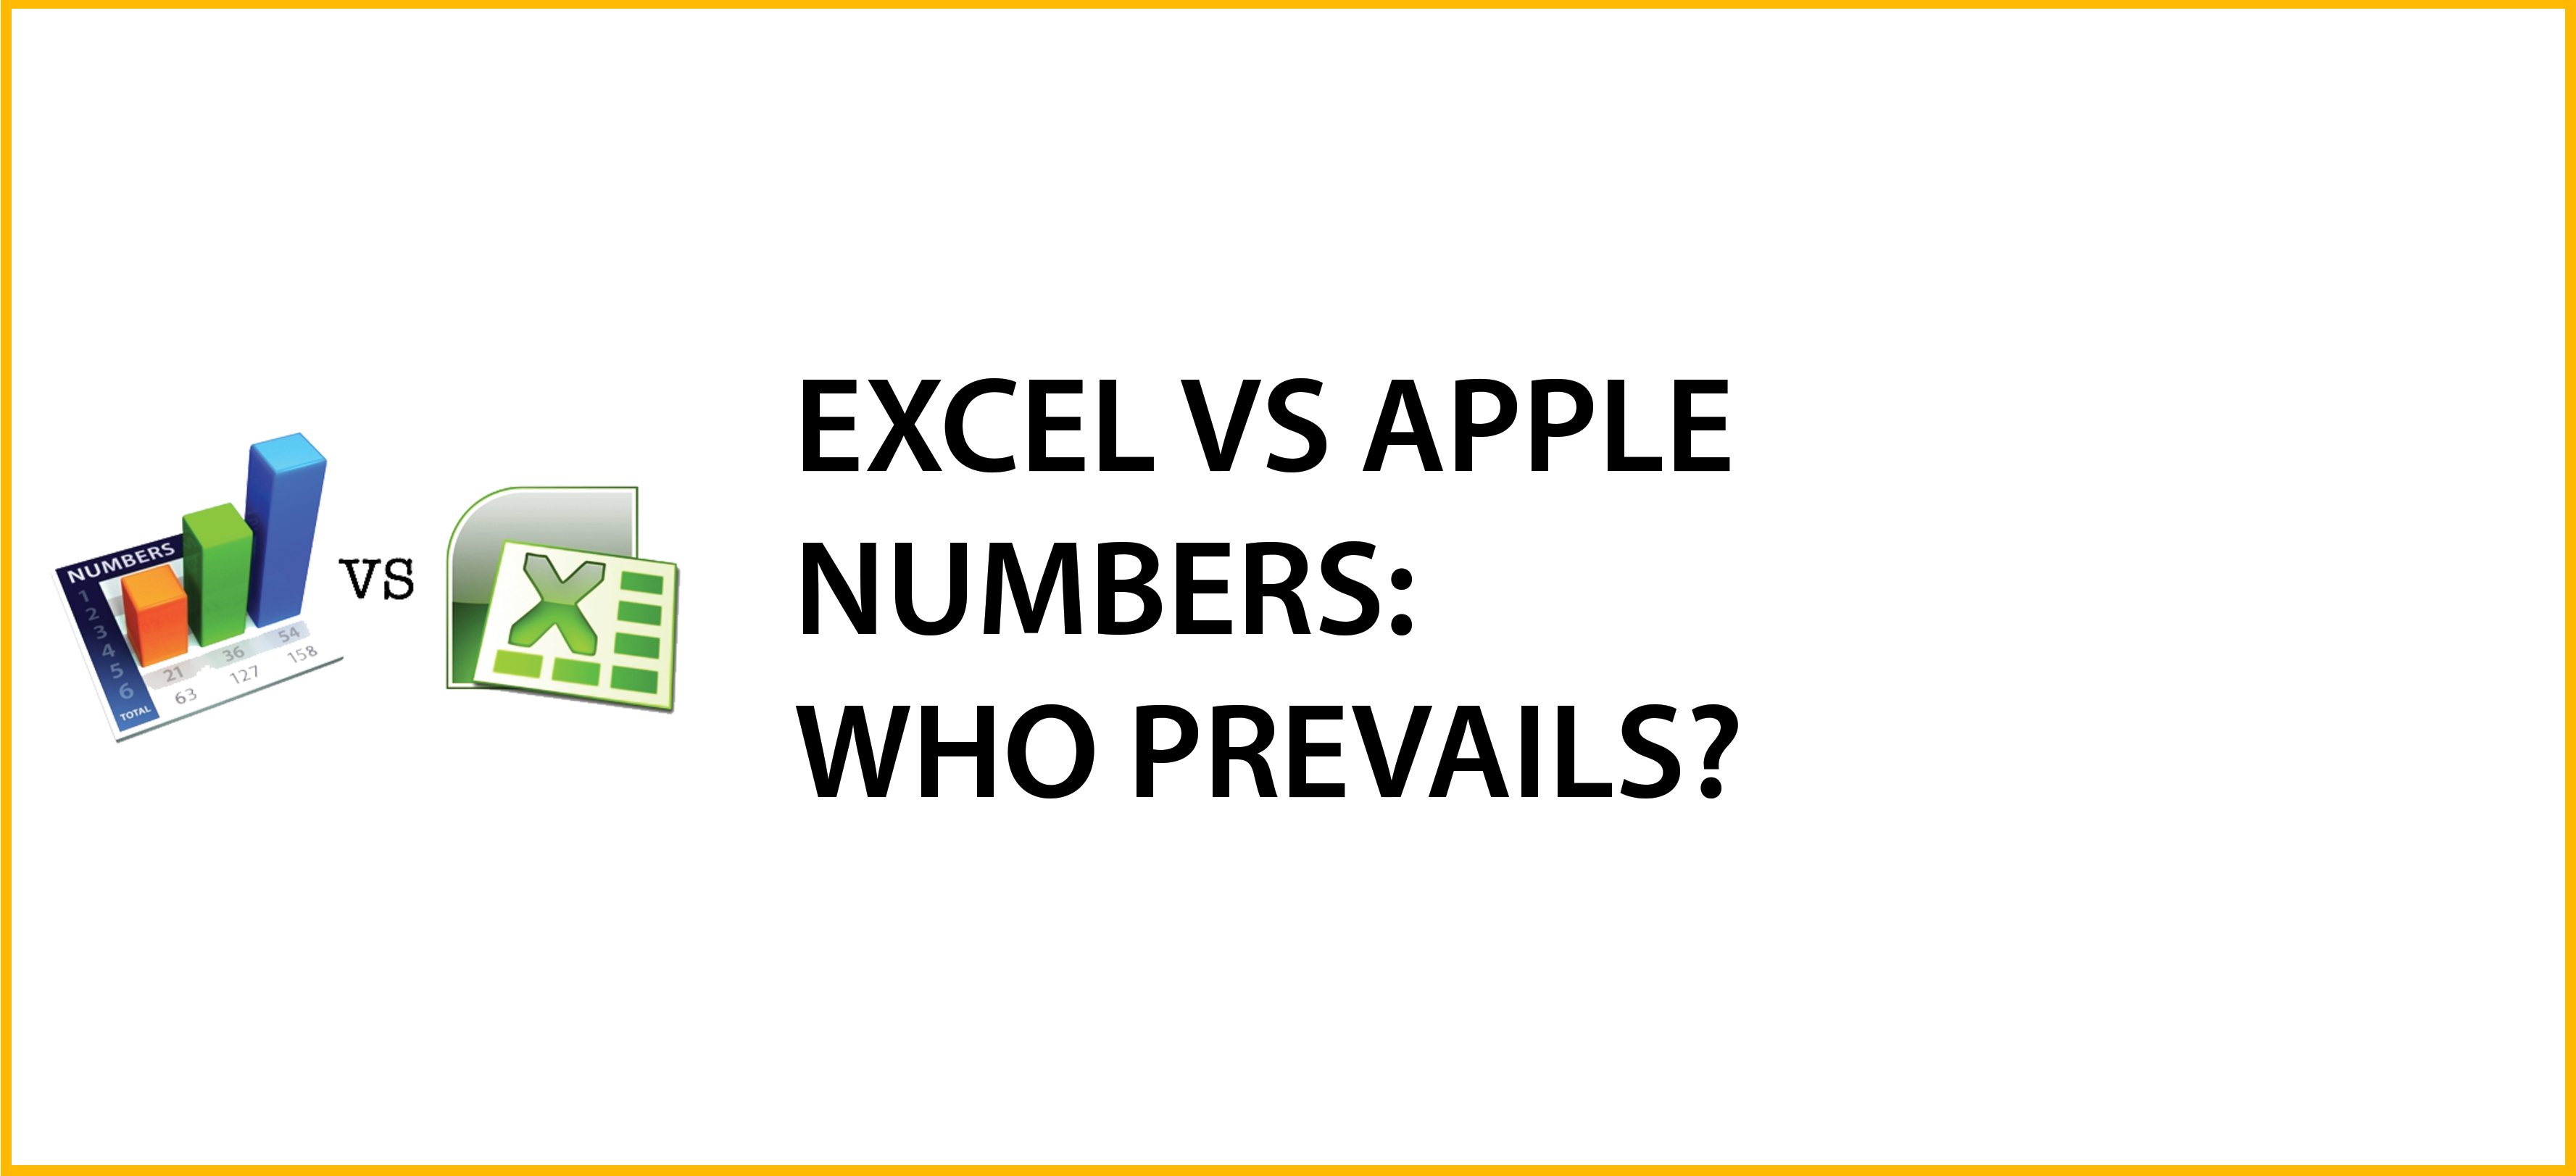 Spreadsheet Programs Other Than Excel For Microsoft Excel Versus Apple's Numbers: Who Prevails?  Excel With